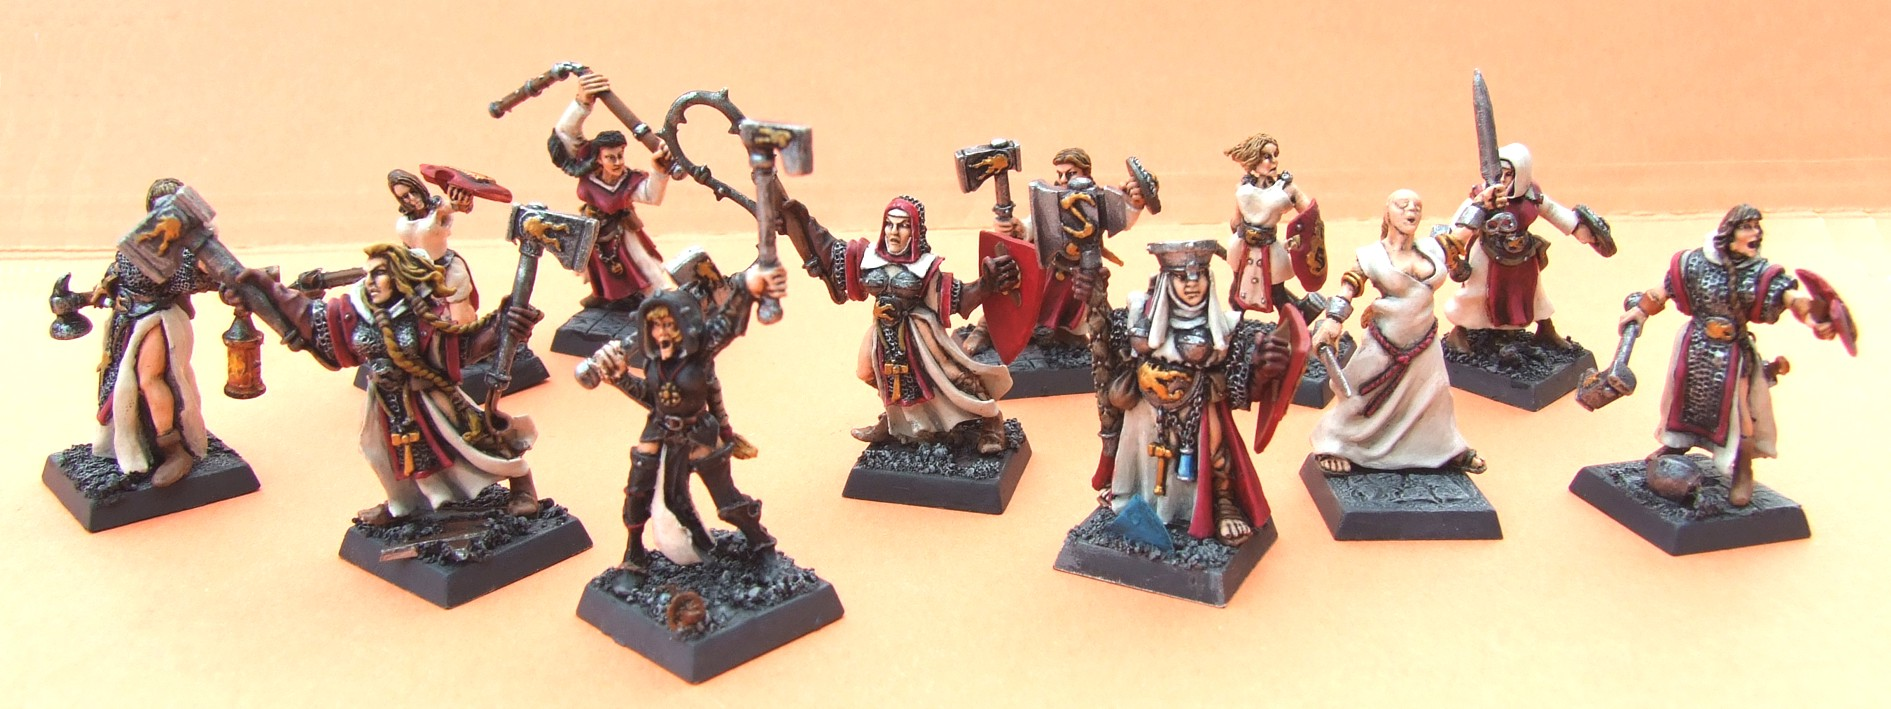 aldhick - Aldhick's gangs - Page 3 Warband